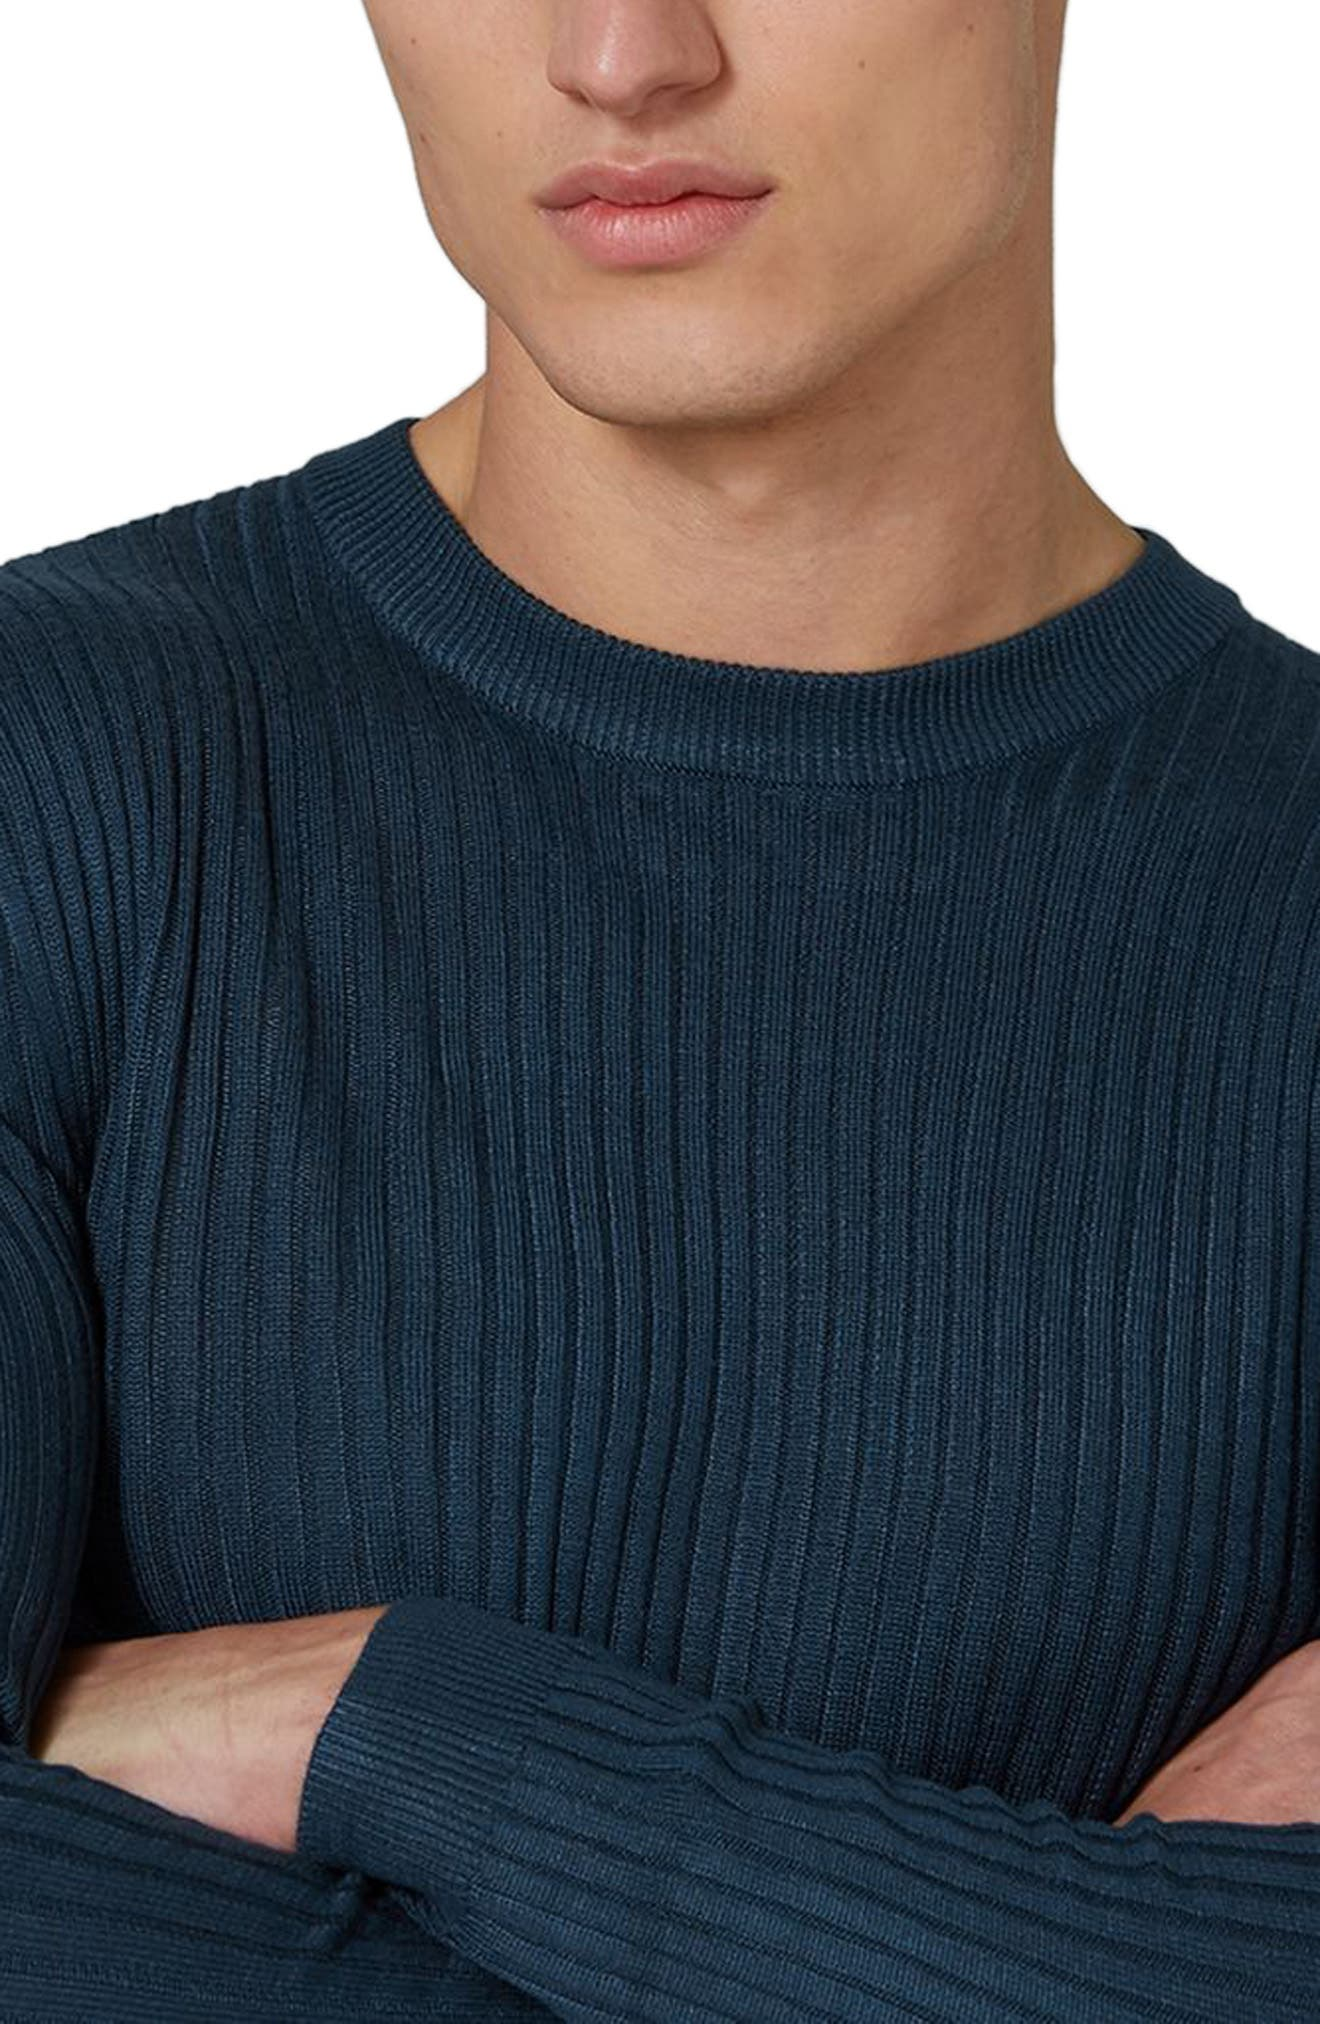 Ribbed Muscle Fit Sweater,                             Alternate thumbnail 3, color,                             420